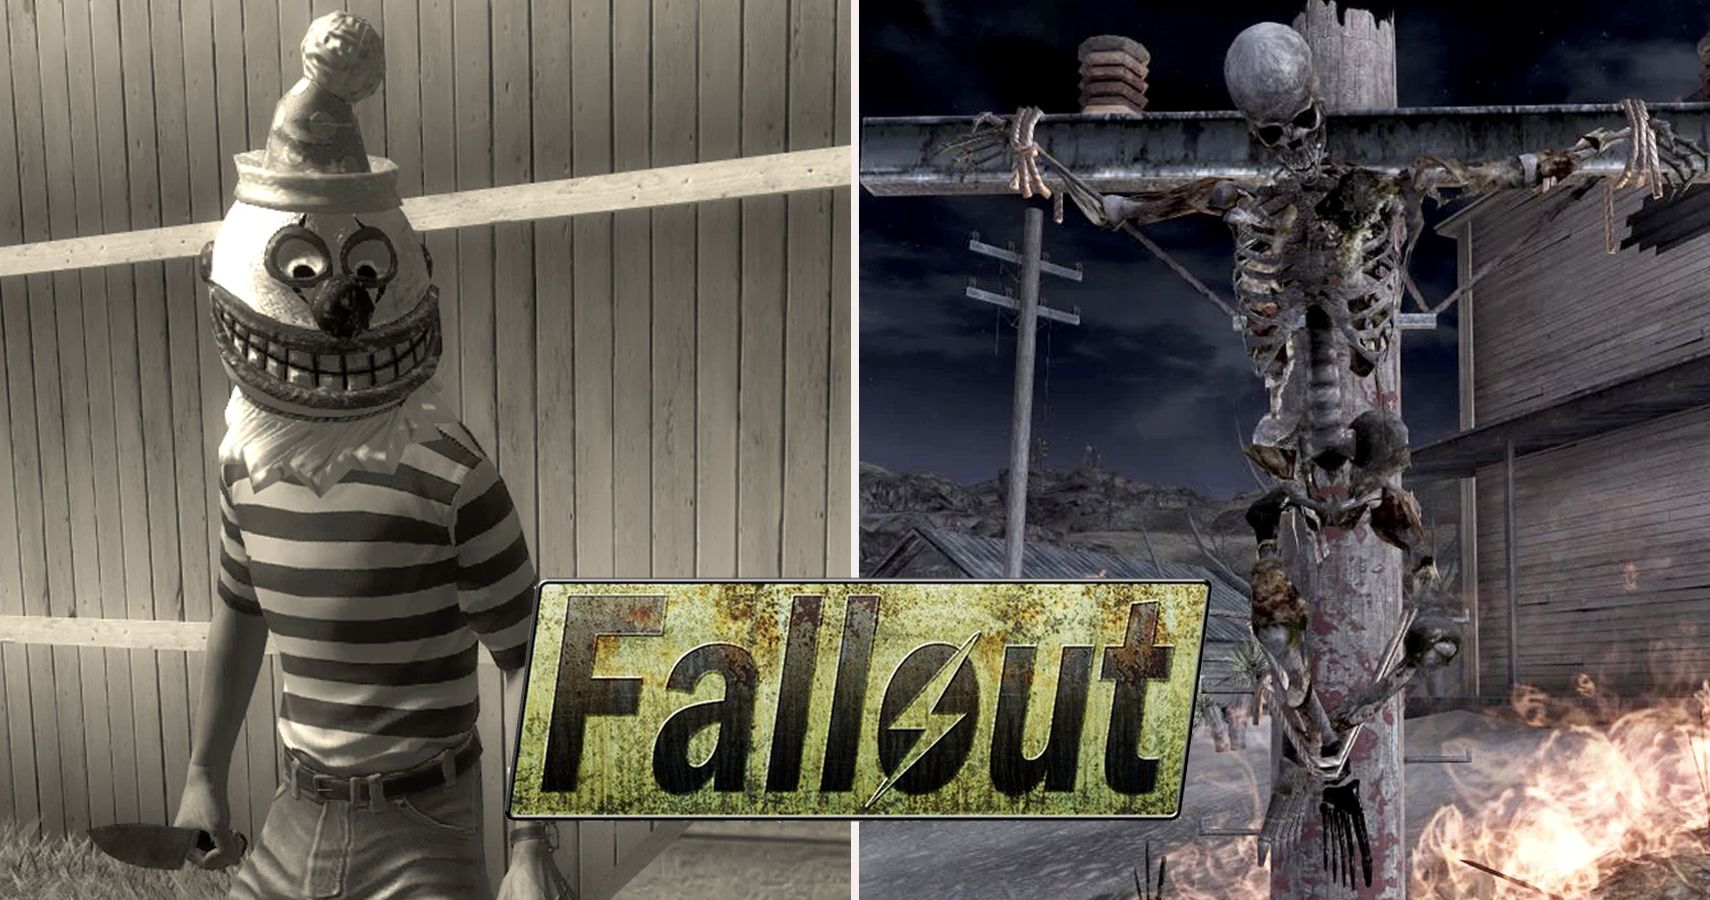 The Scariest Fallout Locations That Will Keep You Up At Night on fallout 3 dunwich ruins, fallout journal, fallout 3 dunwich bobblehead, subway under capitol building, fallout 3 chryslus building, fallout dunwich horror,